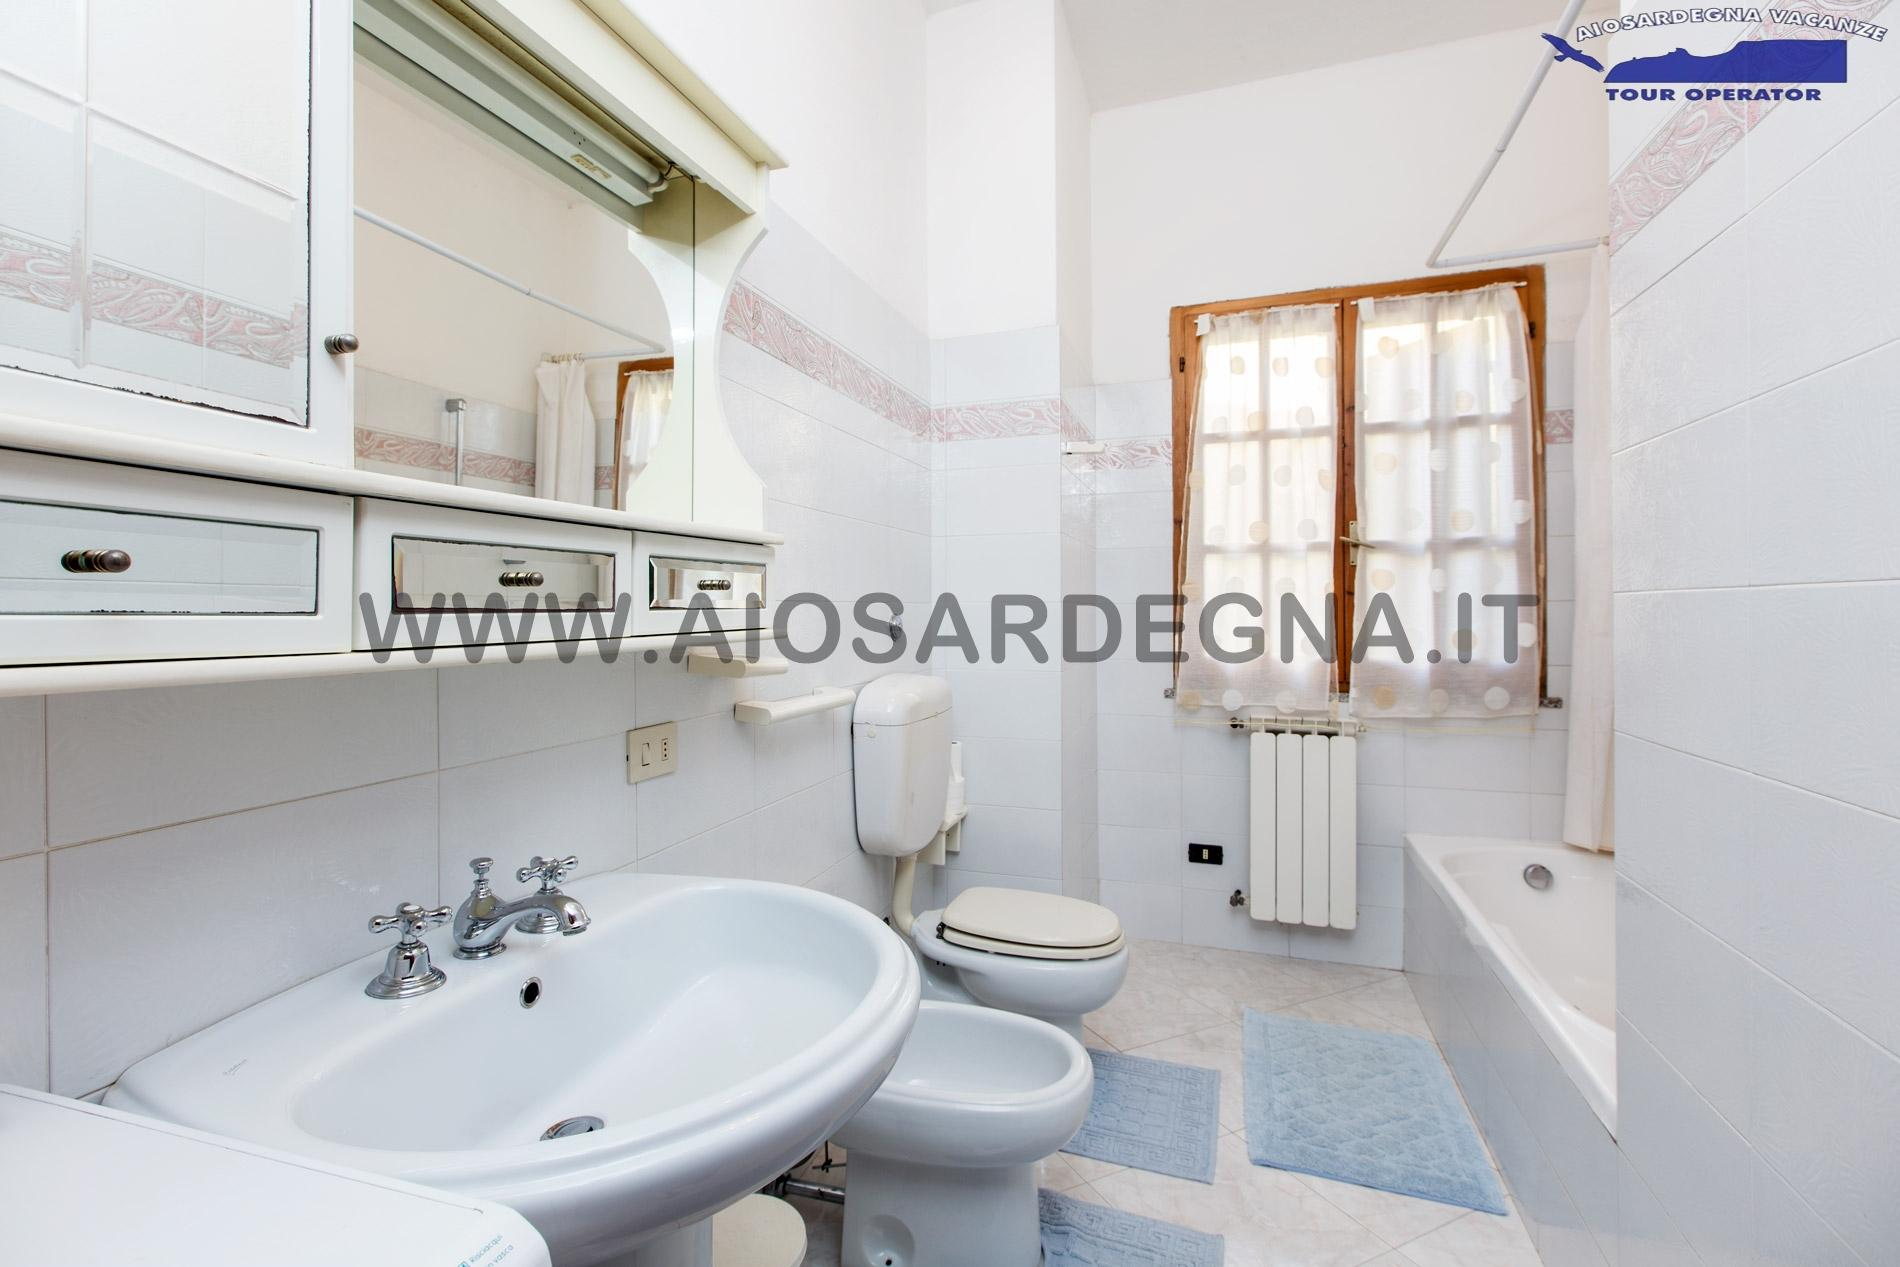 Holiday home Apartment for 2 with garden 3 bedrooms Pula